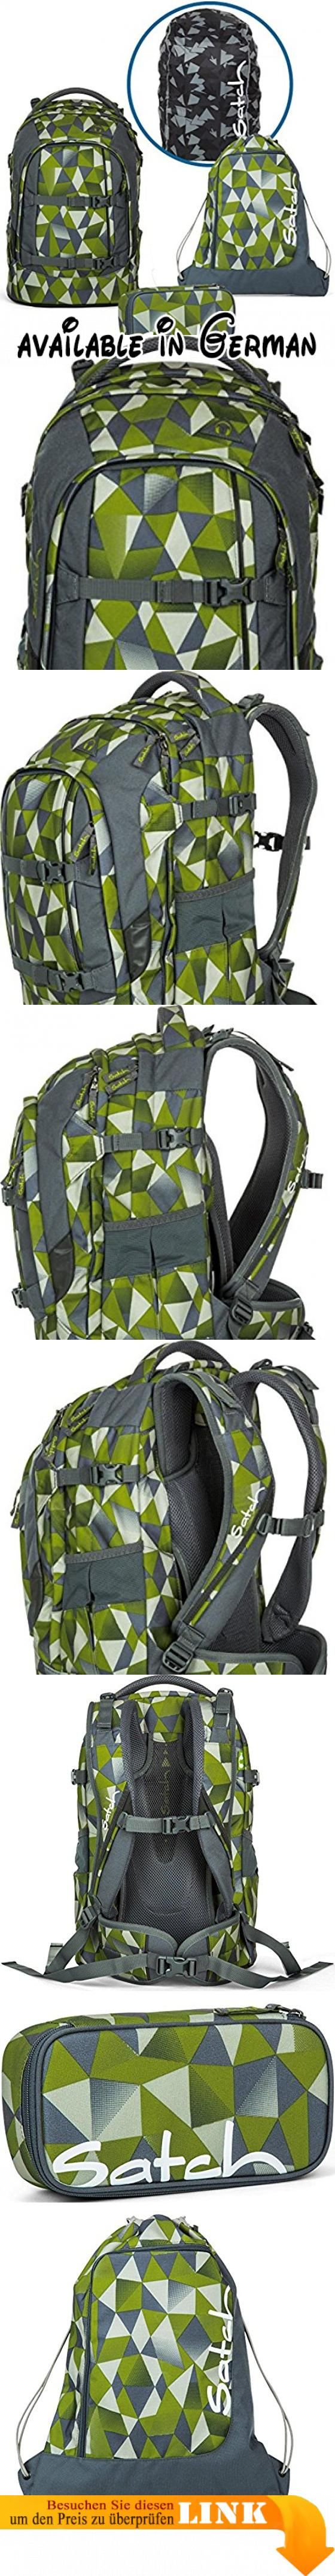 Satch Schulrucksack Set 4-tlg Pack Green Crush 9L1 green crush. Altersgruppe: Kinder. Artikeltyp: Rucksack Sets. Außenausstattung: Kompressionsriemen. Außenmaße: 30 x 22 x 45 cm (B|T|H). Für wen: Jungs #Office Product #EDUCATIONAL_SUPPLIES